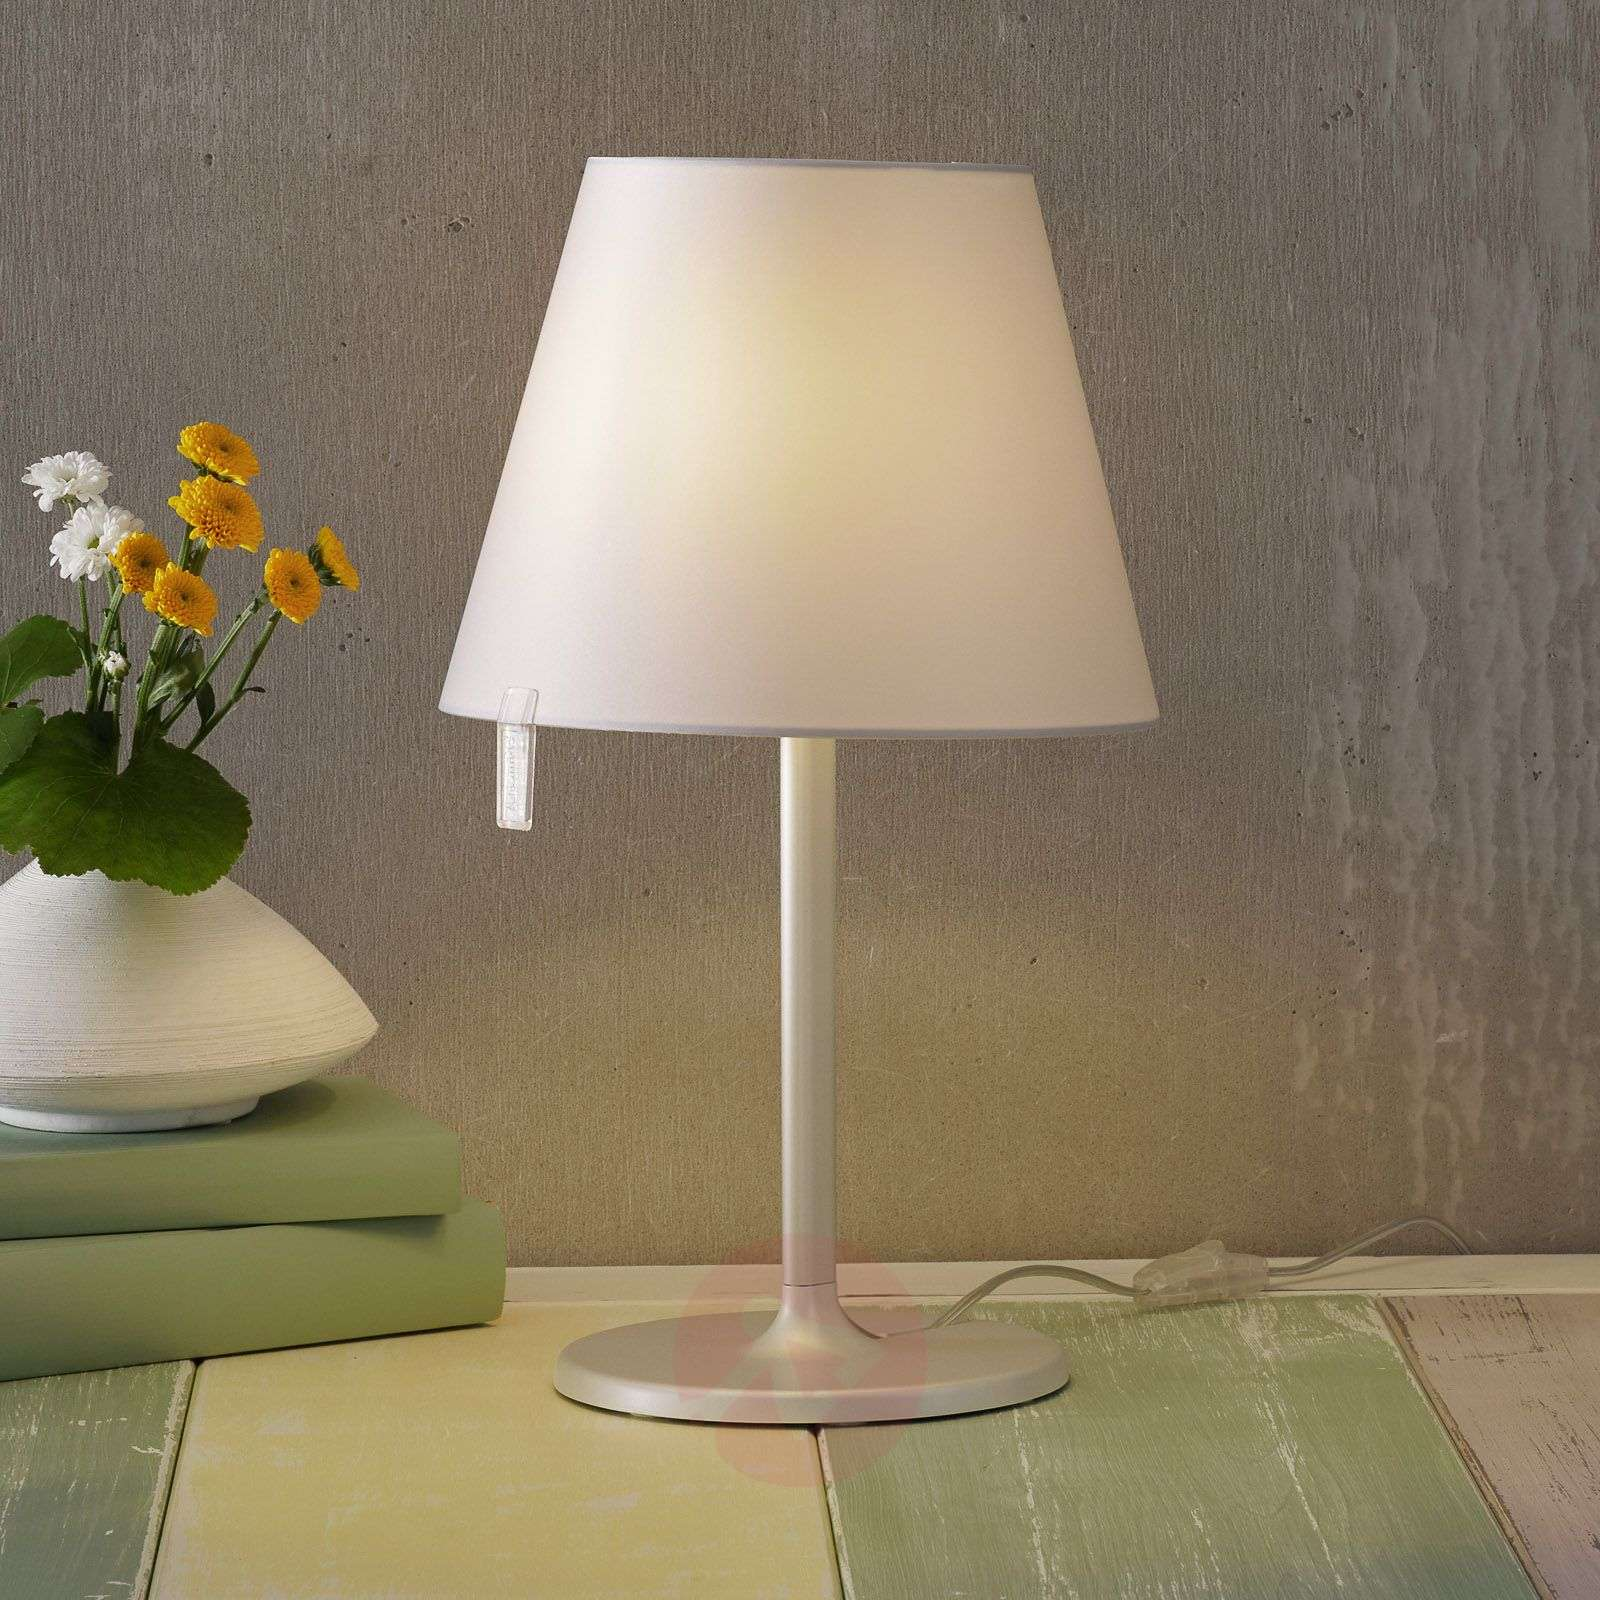 Melampo notte bedside light, grey-1060037-01